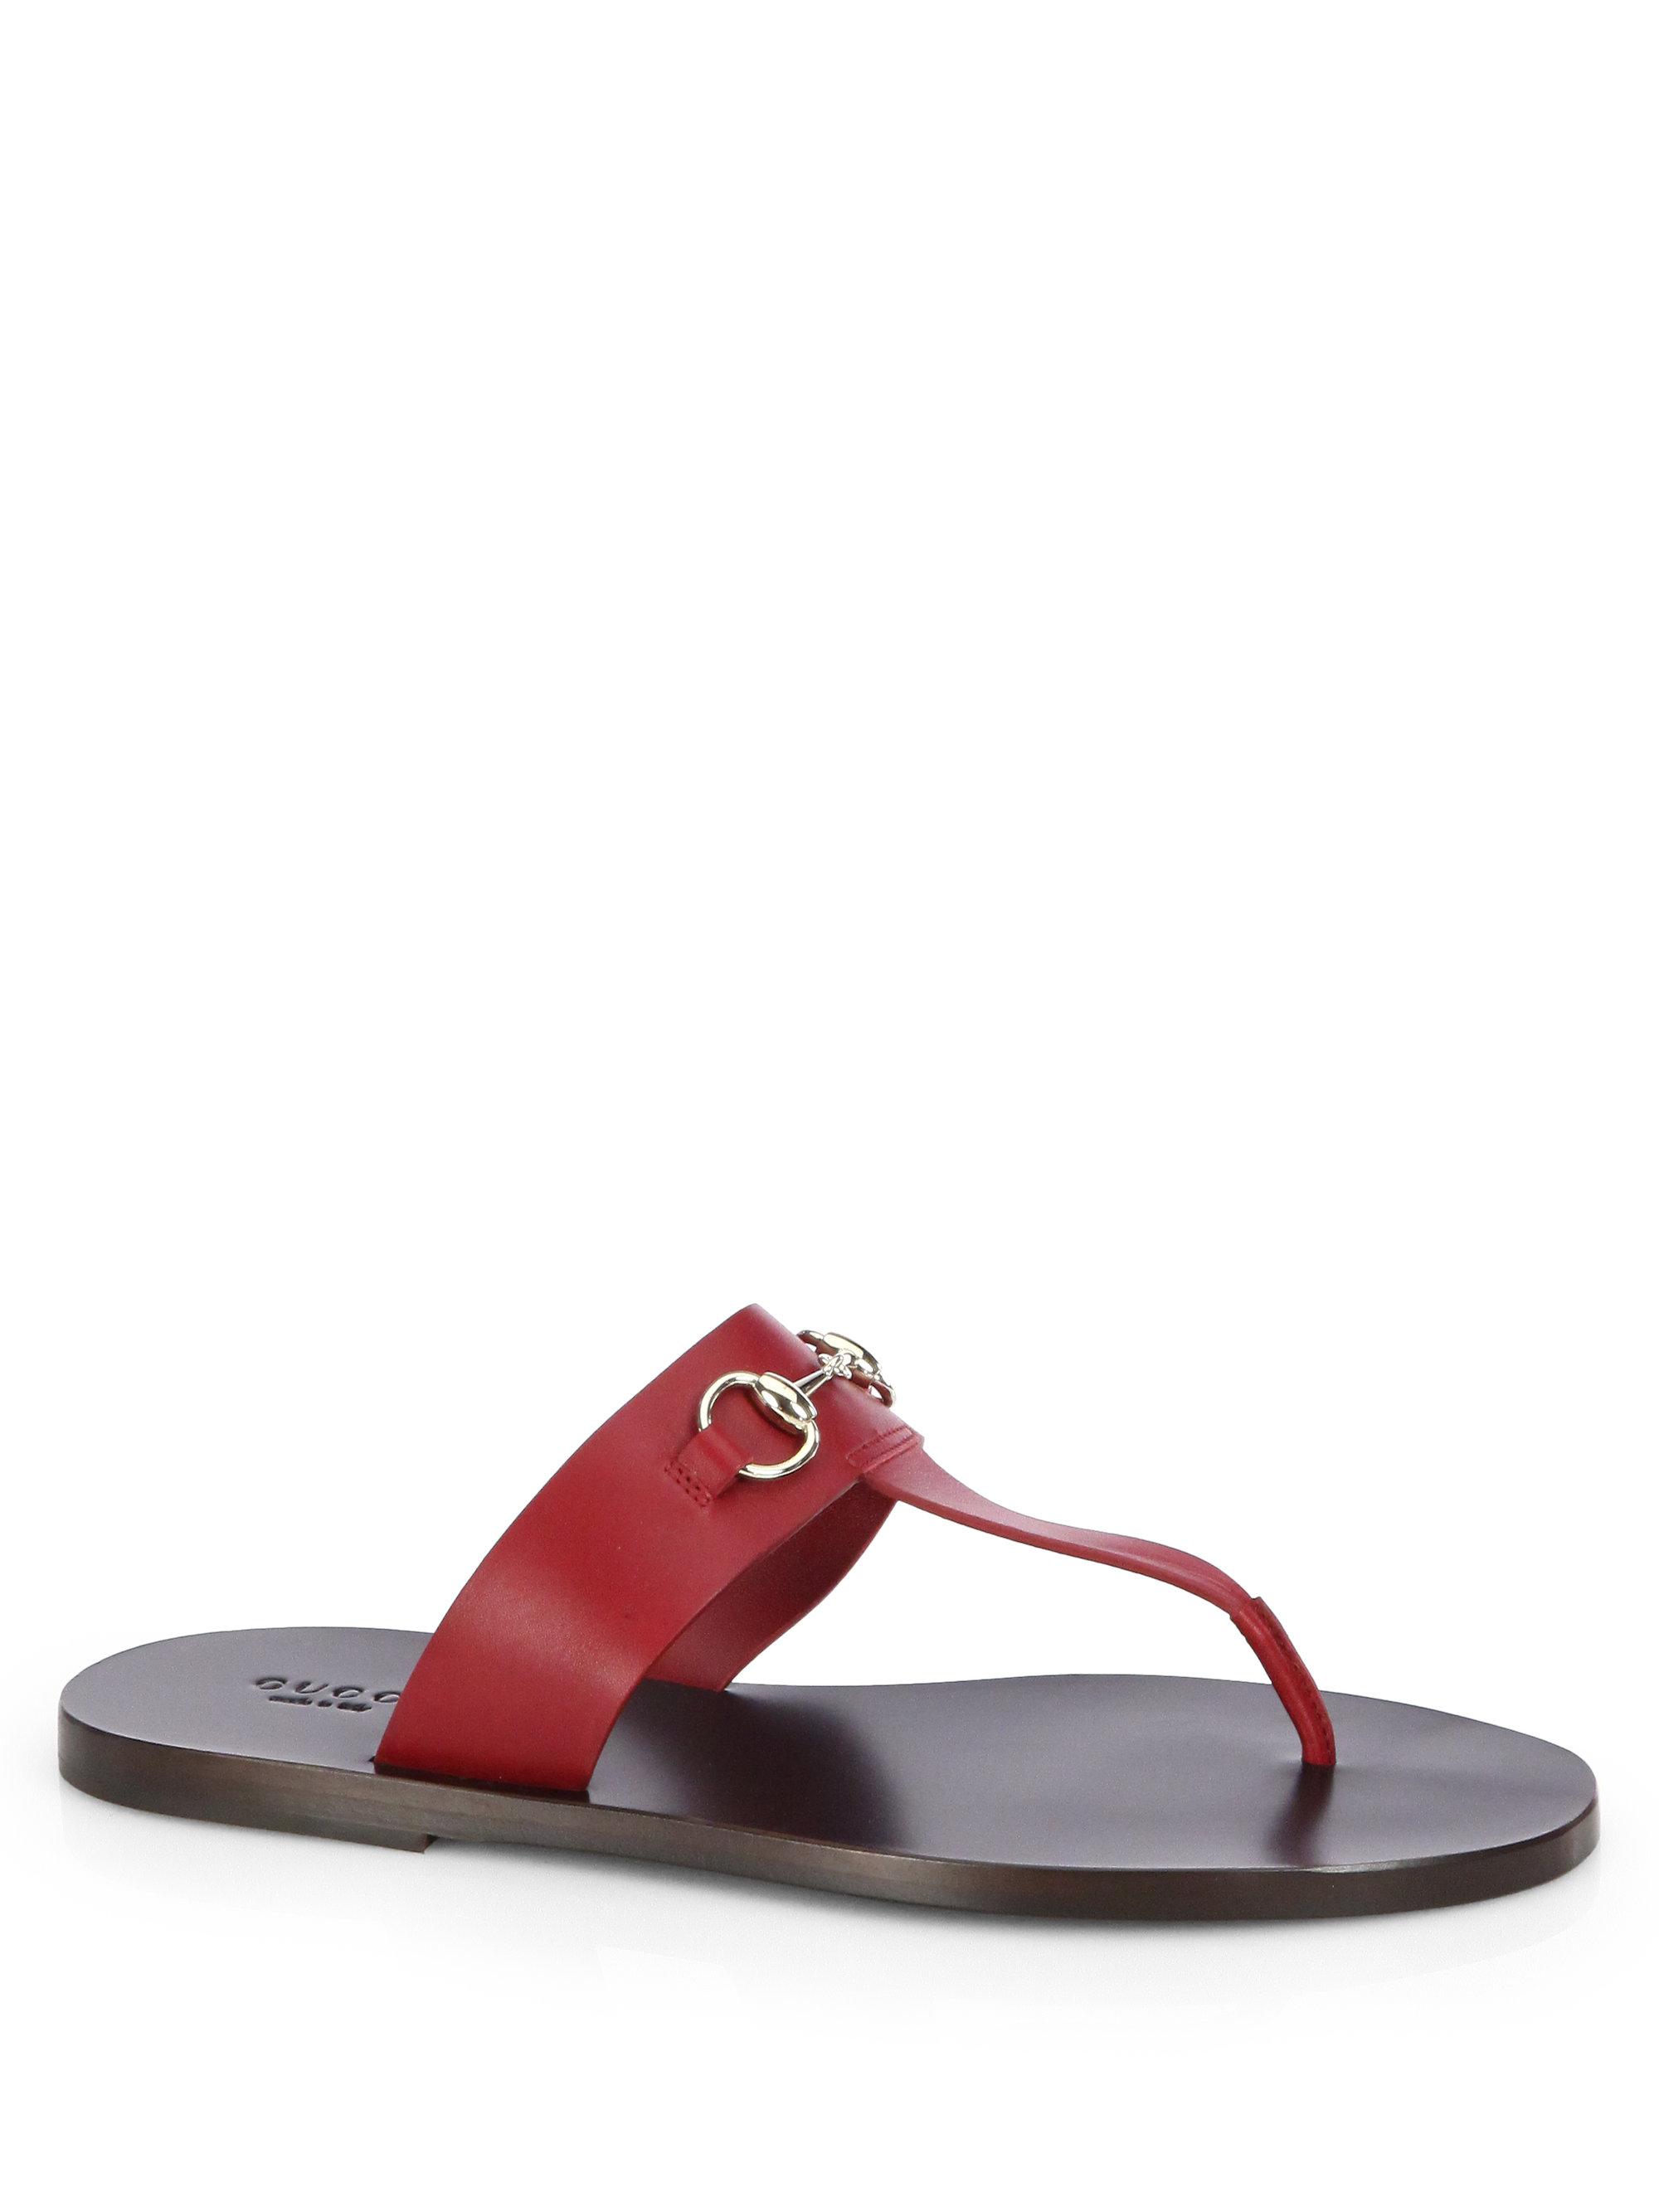 9f80ee19e Gucci Marcy Leather Horsebit Thong Sandals in Red - Lyst